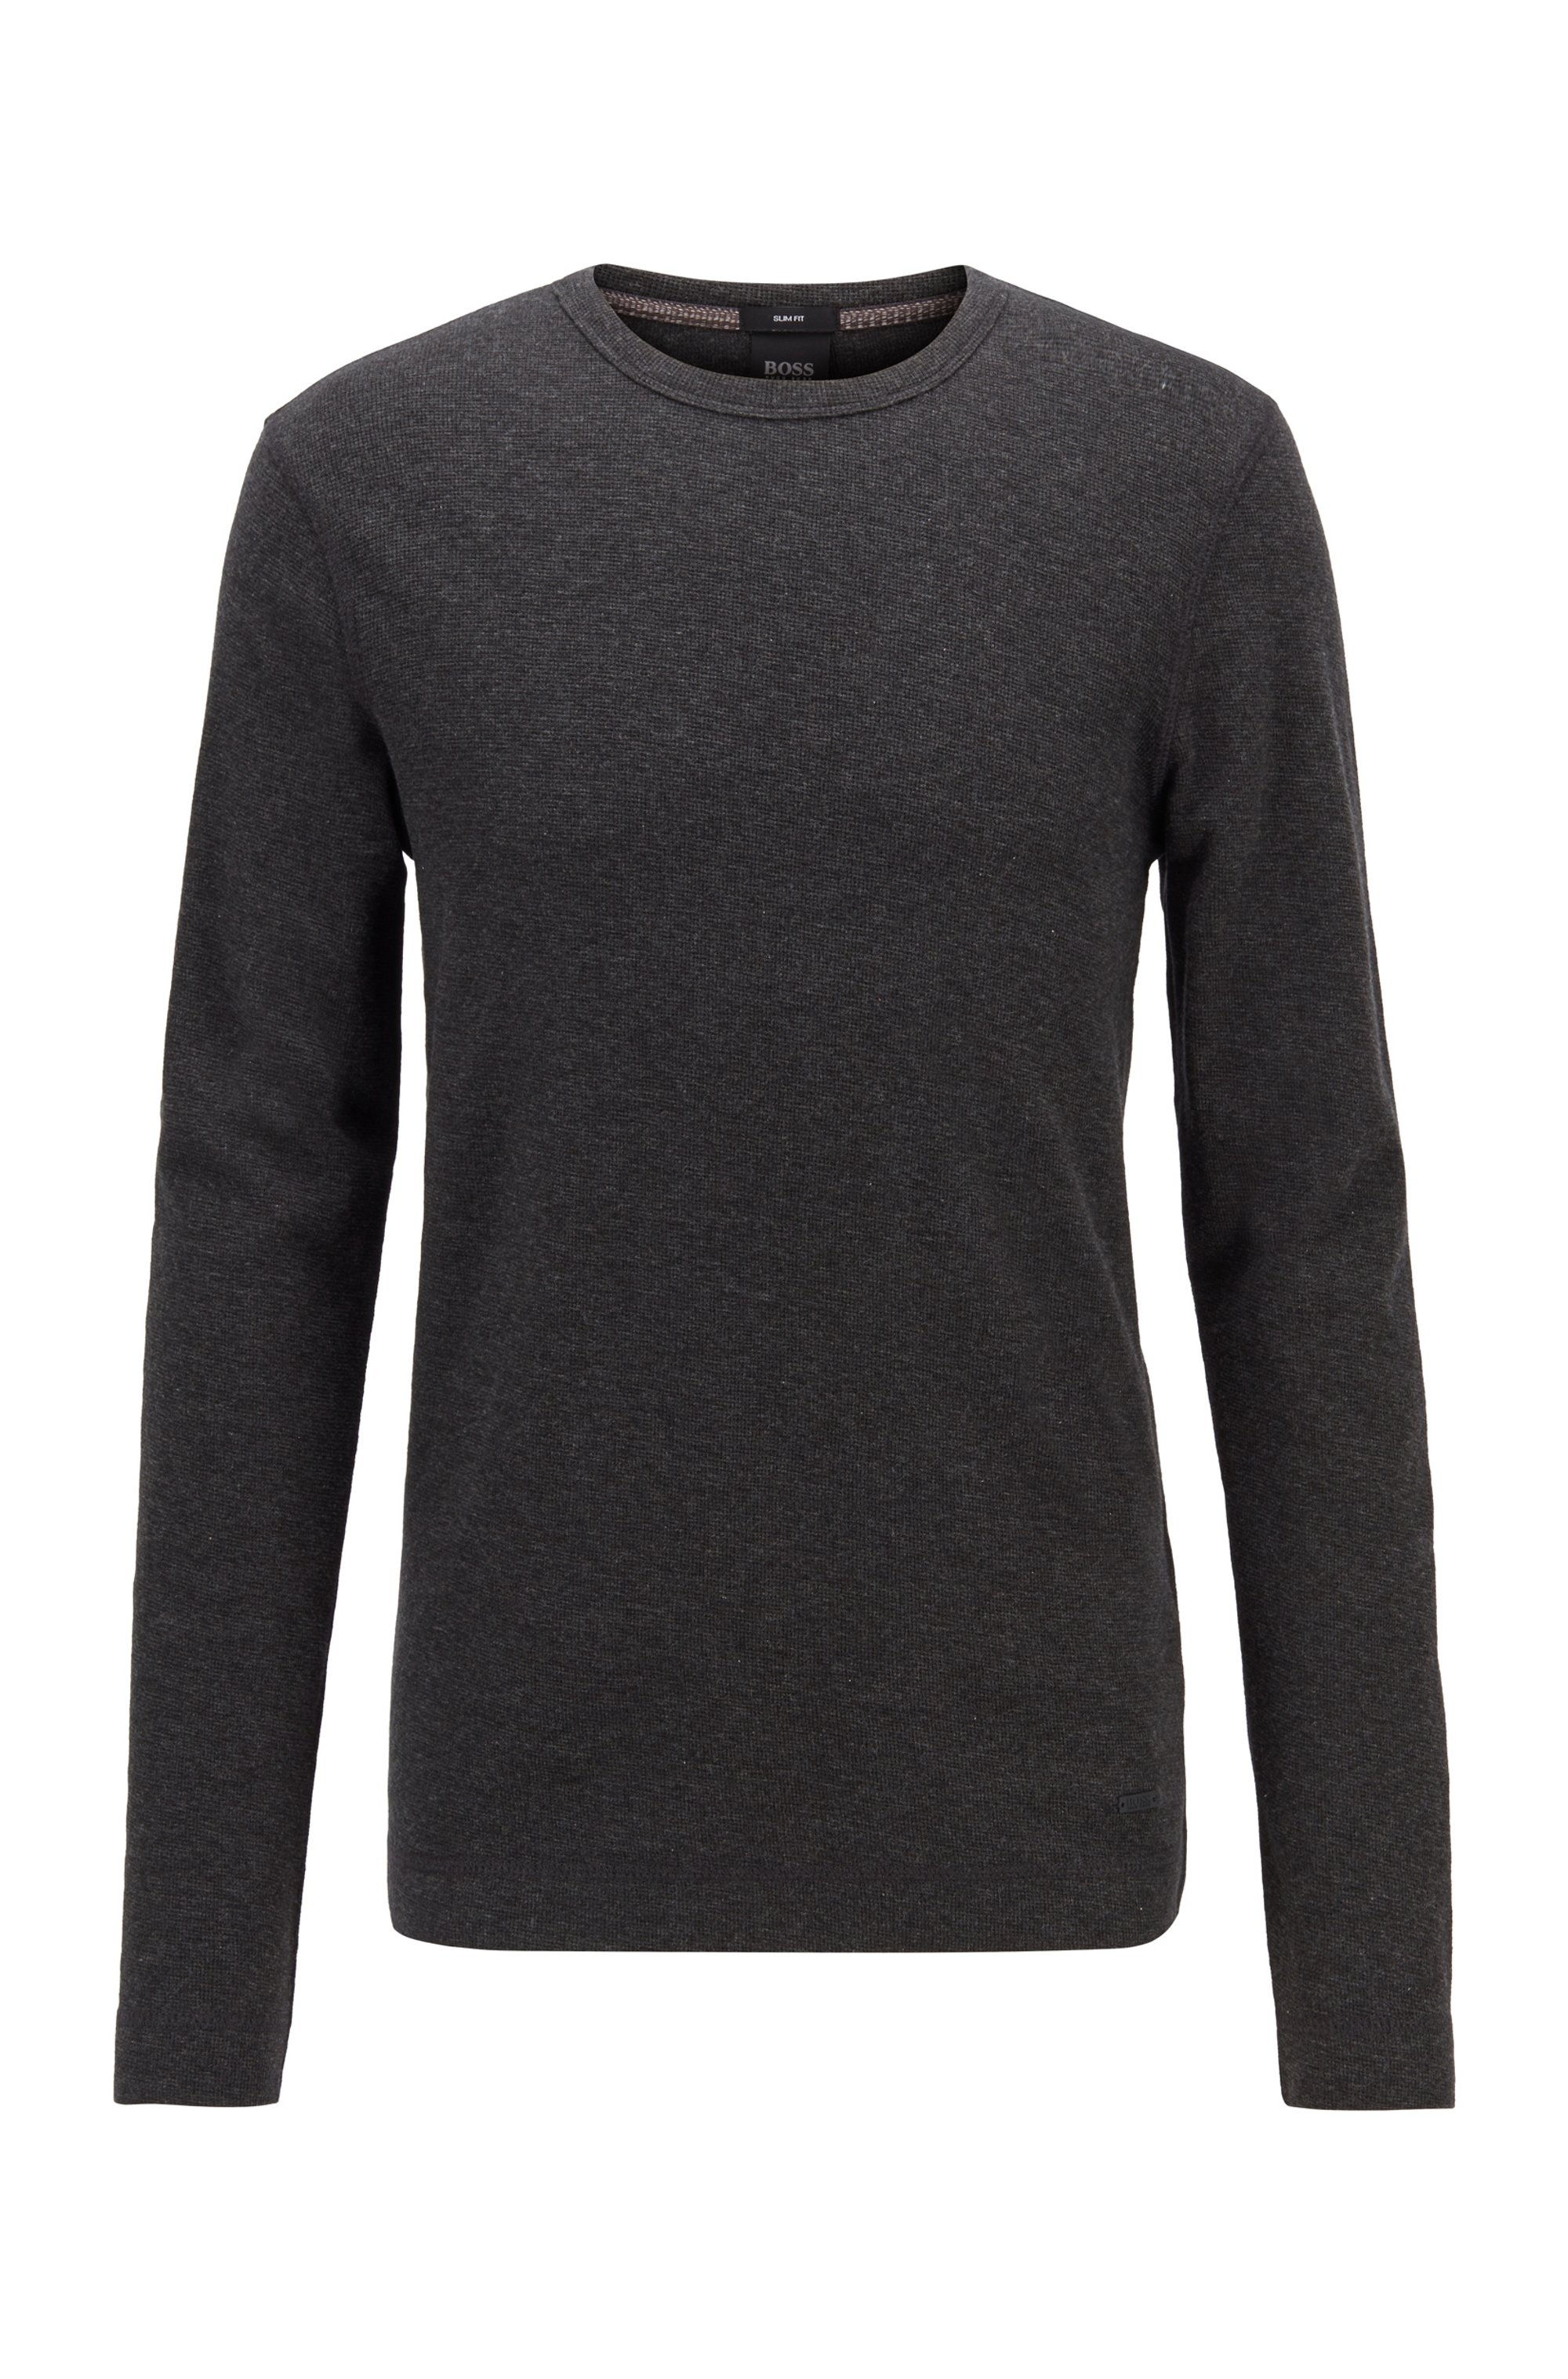 Slim-fit T-shirt with long sleeves in waffle cotton, Black